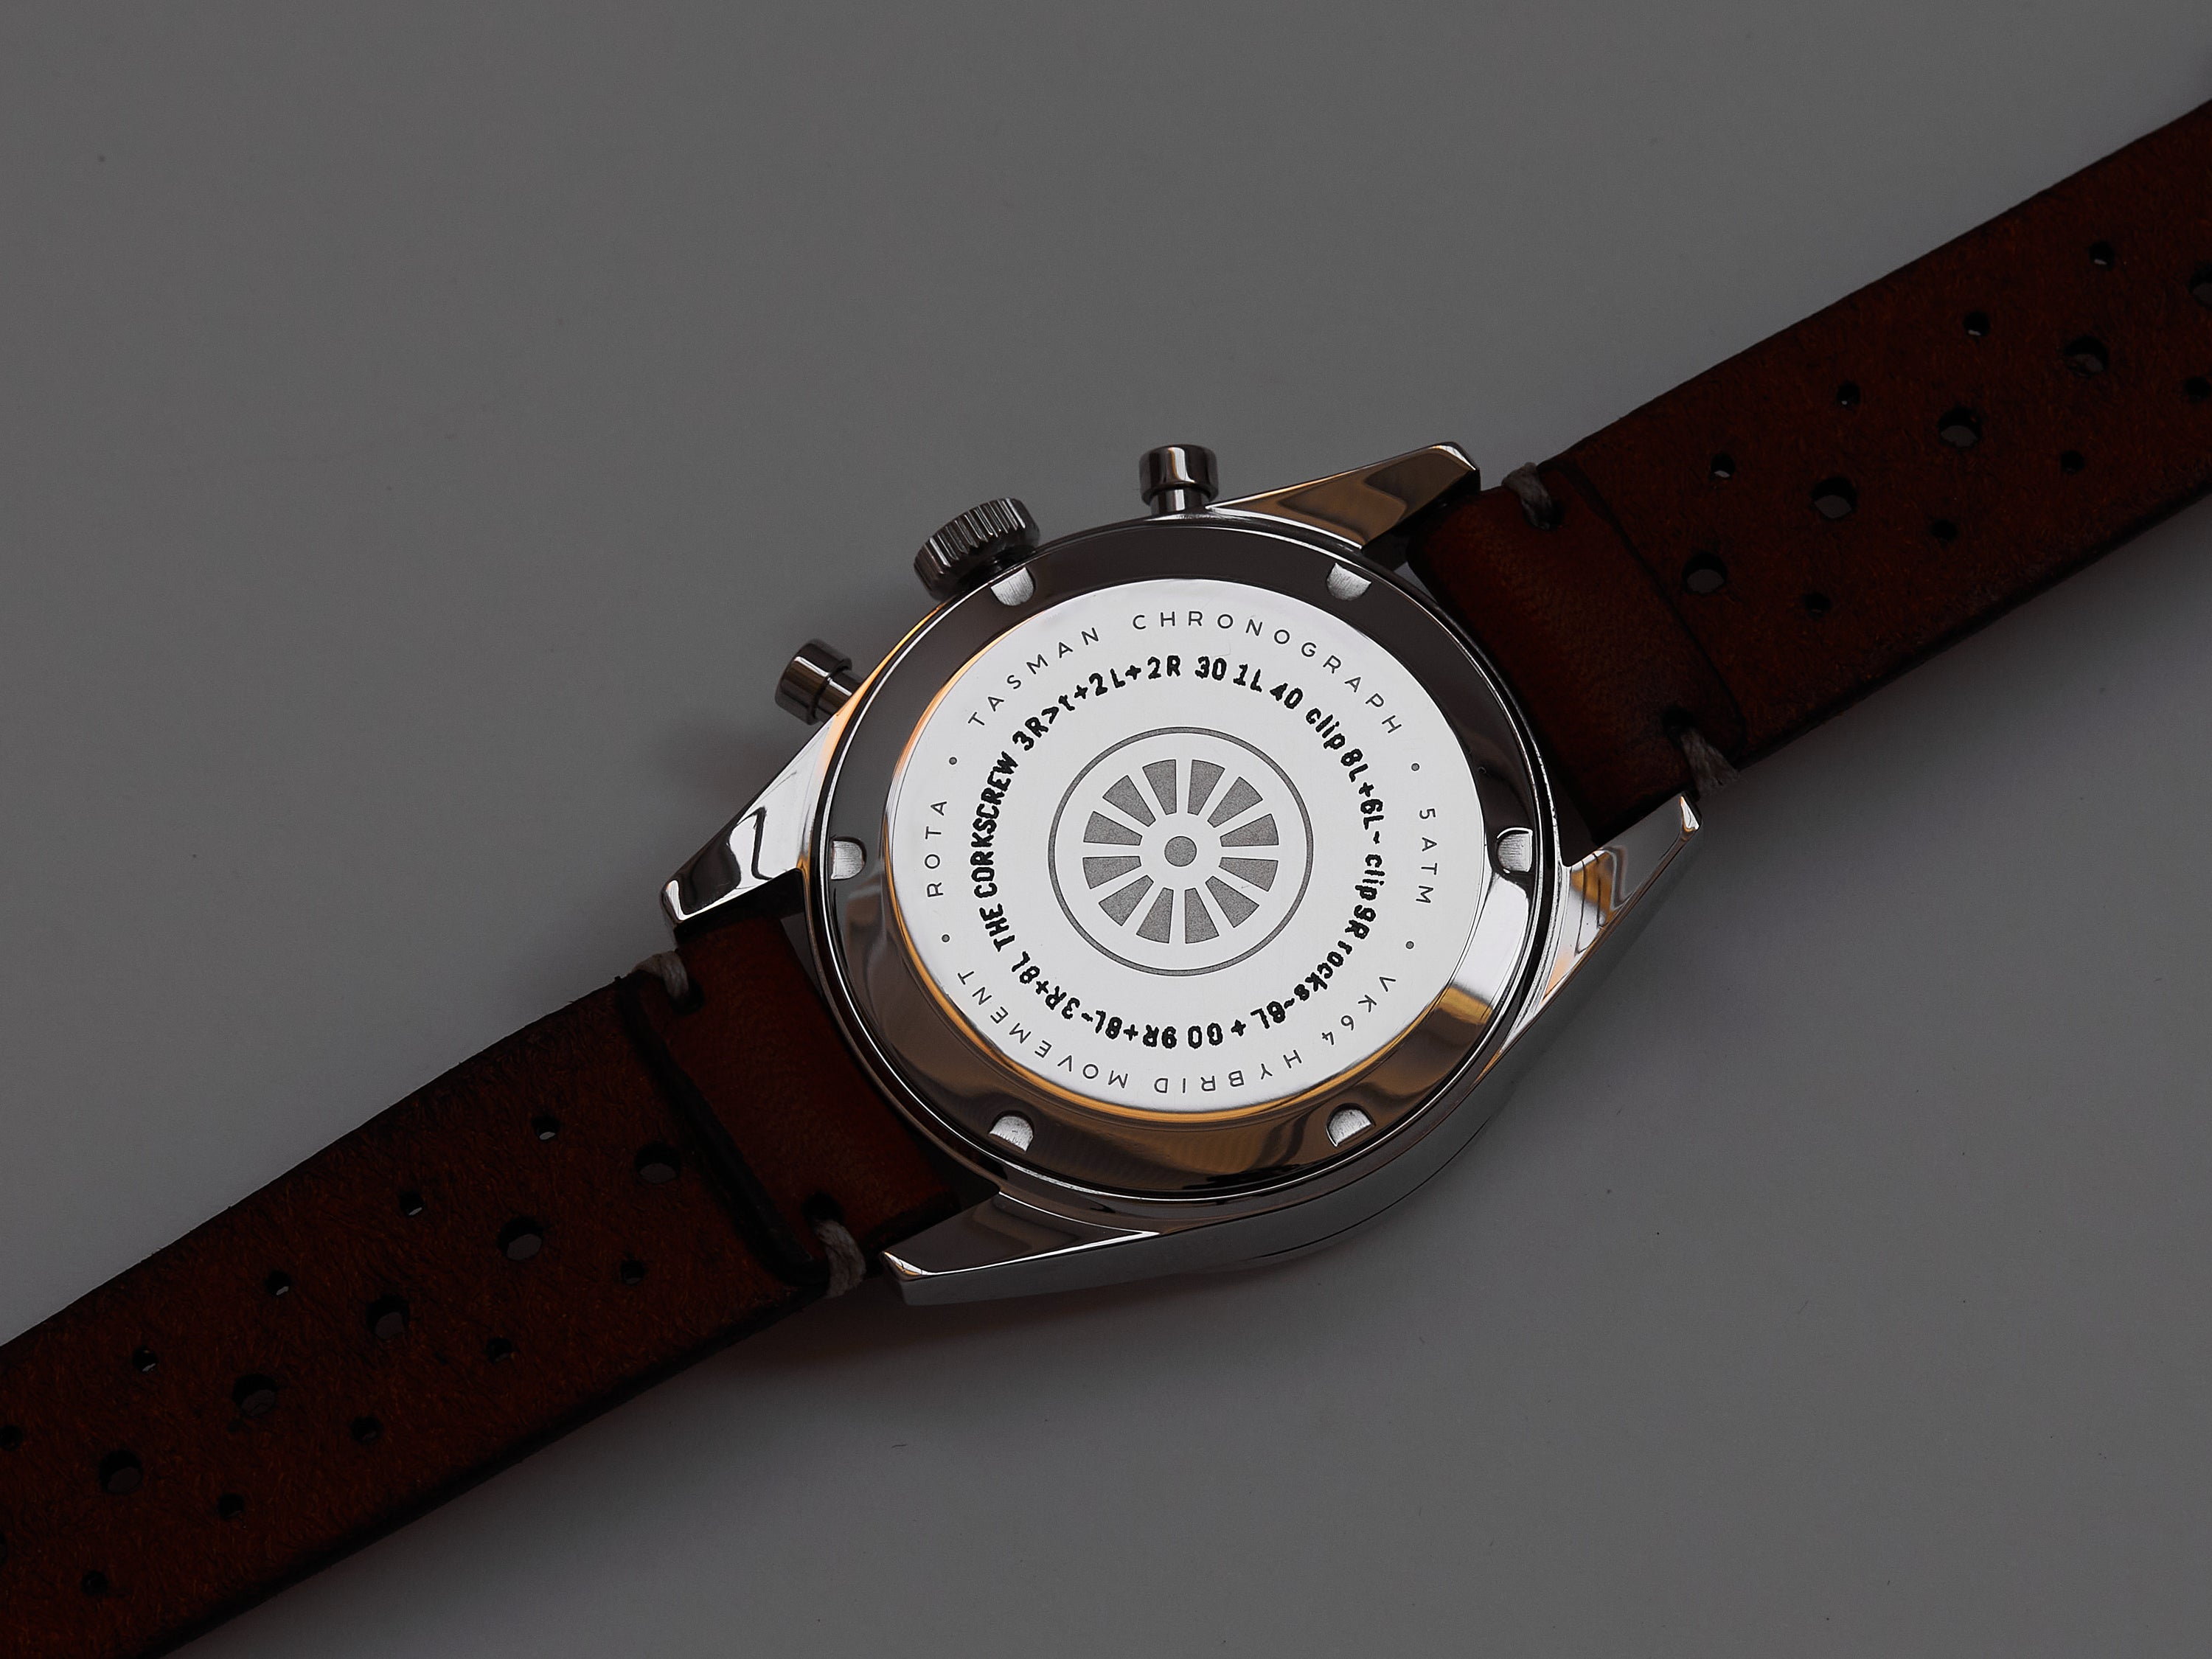 Tasman Chronograph - Adelaide Rally Edition